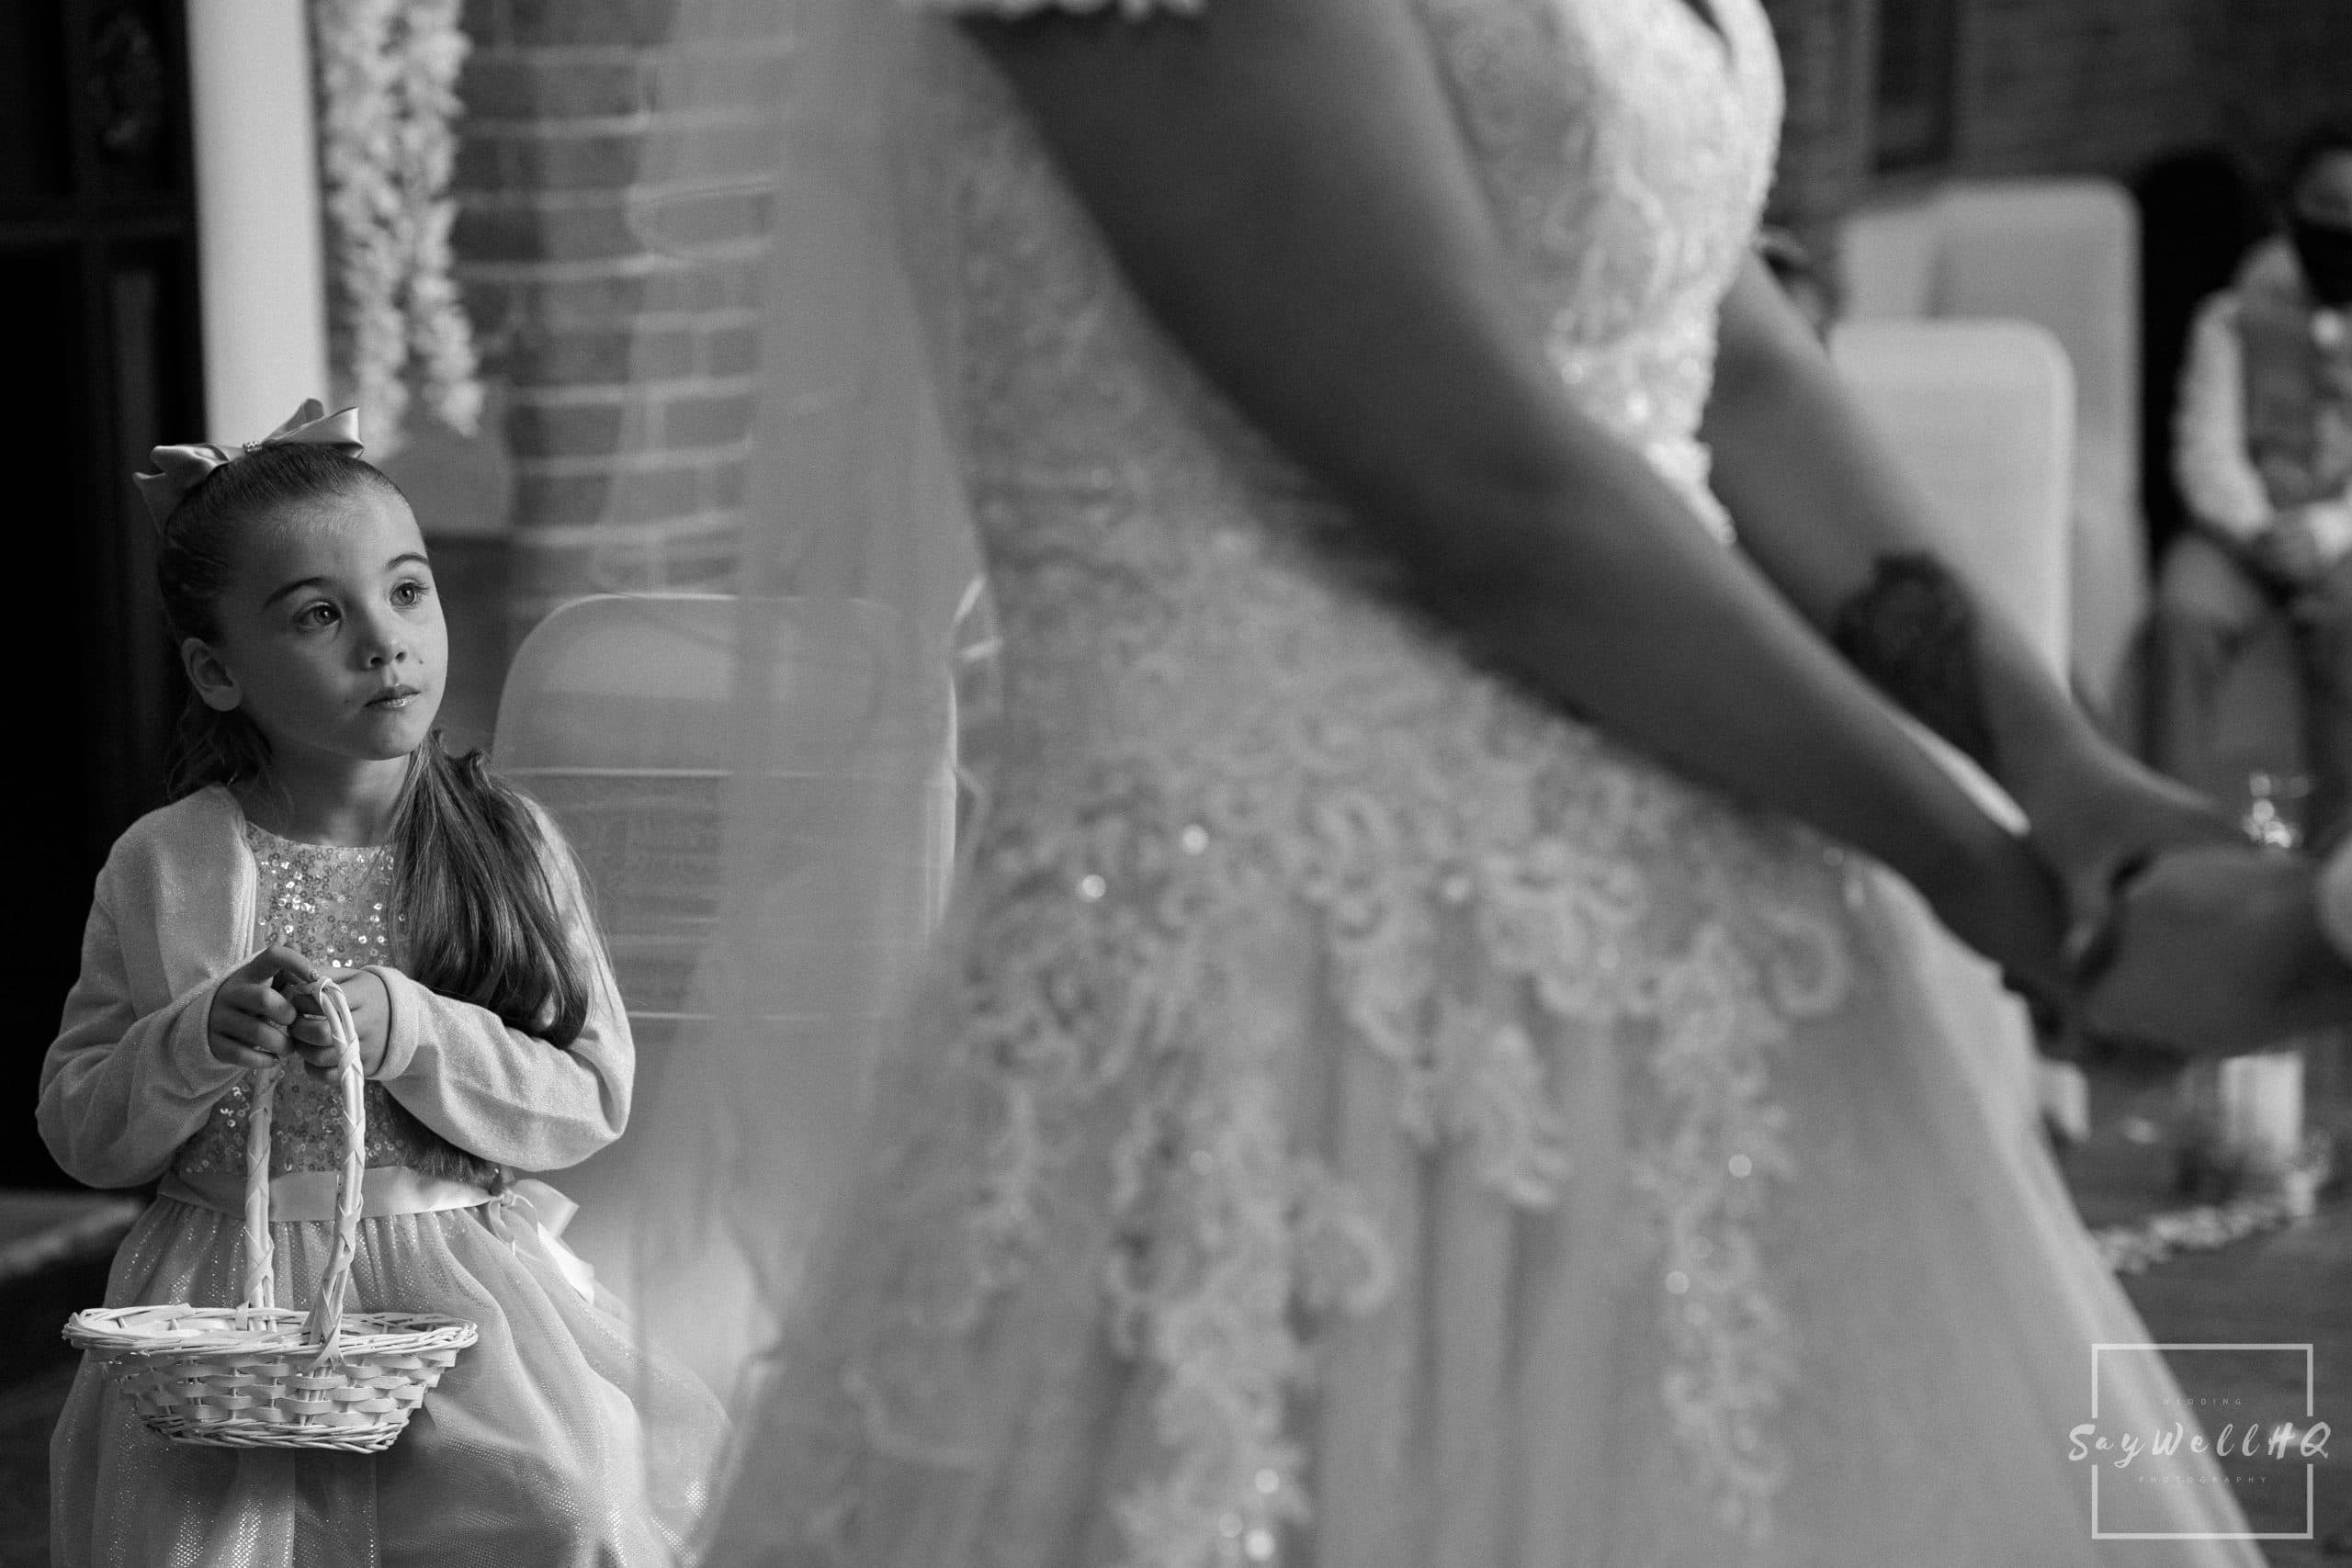 Daughter of the bride looks on at her mum getting married at a Goosedale wedding - Wedding Photography by goosedale wedding photographer Andy Saywell of SaywellHQ